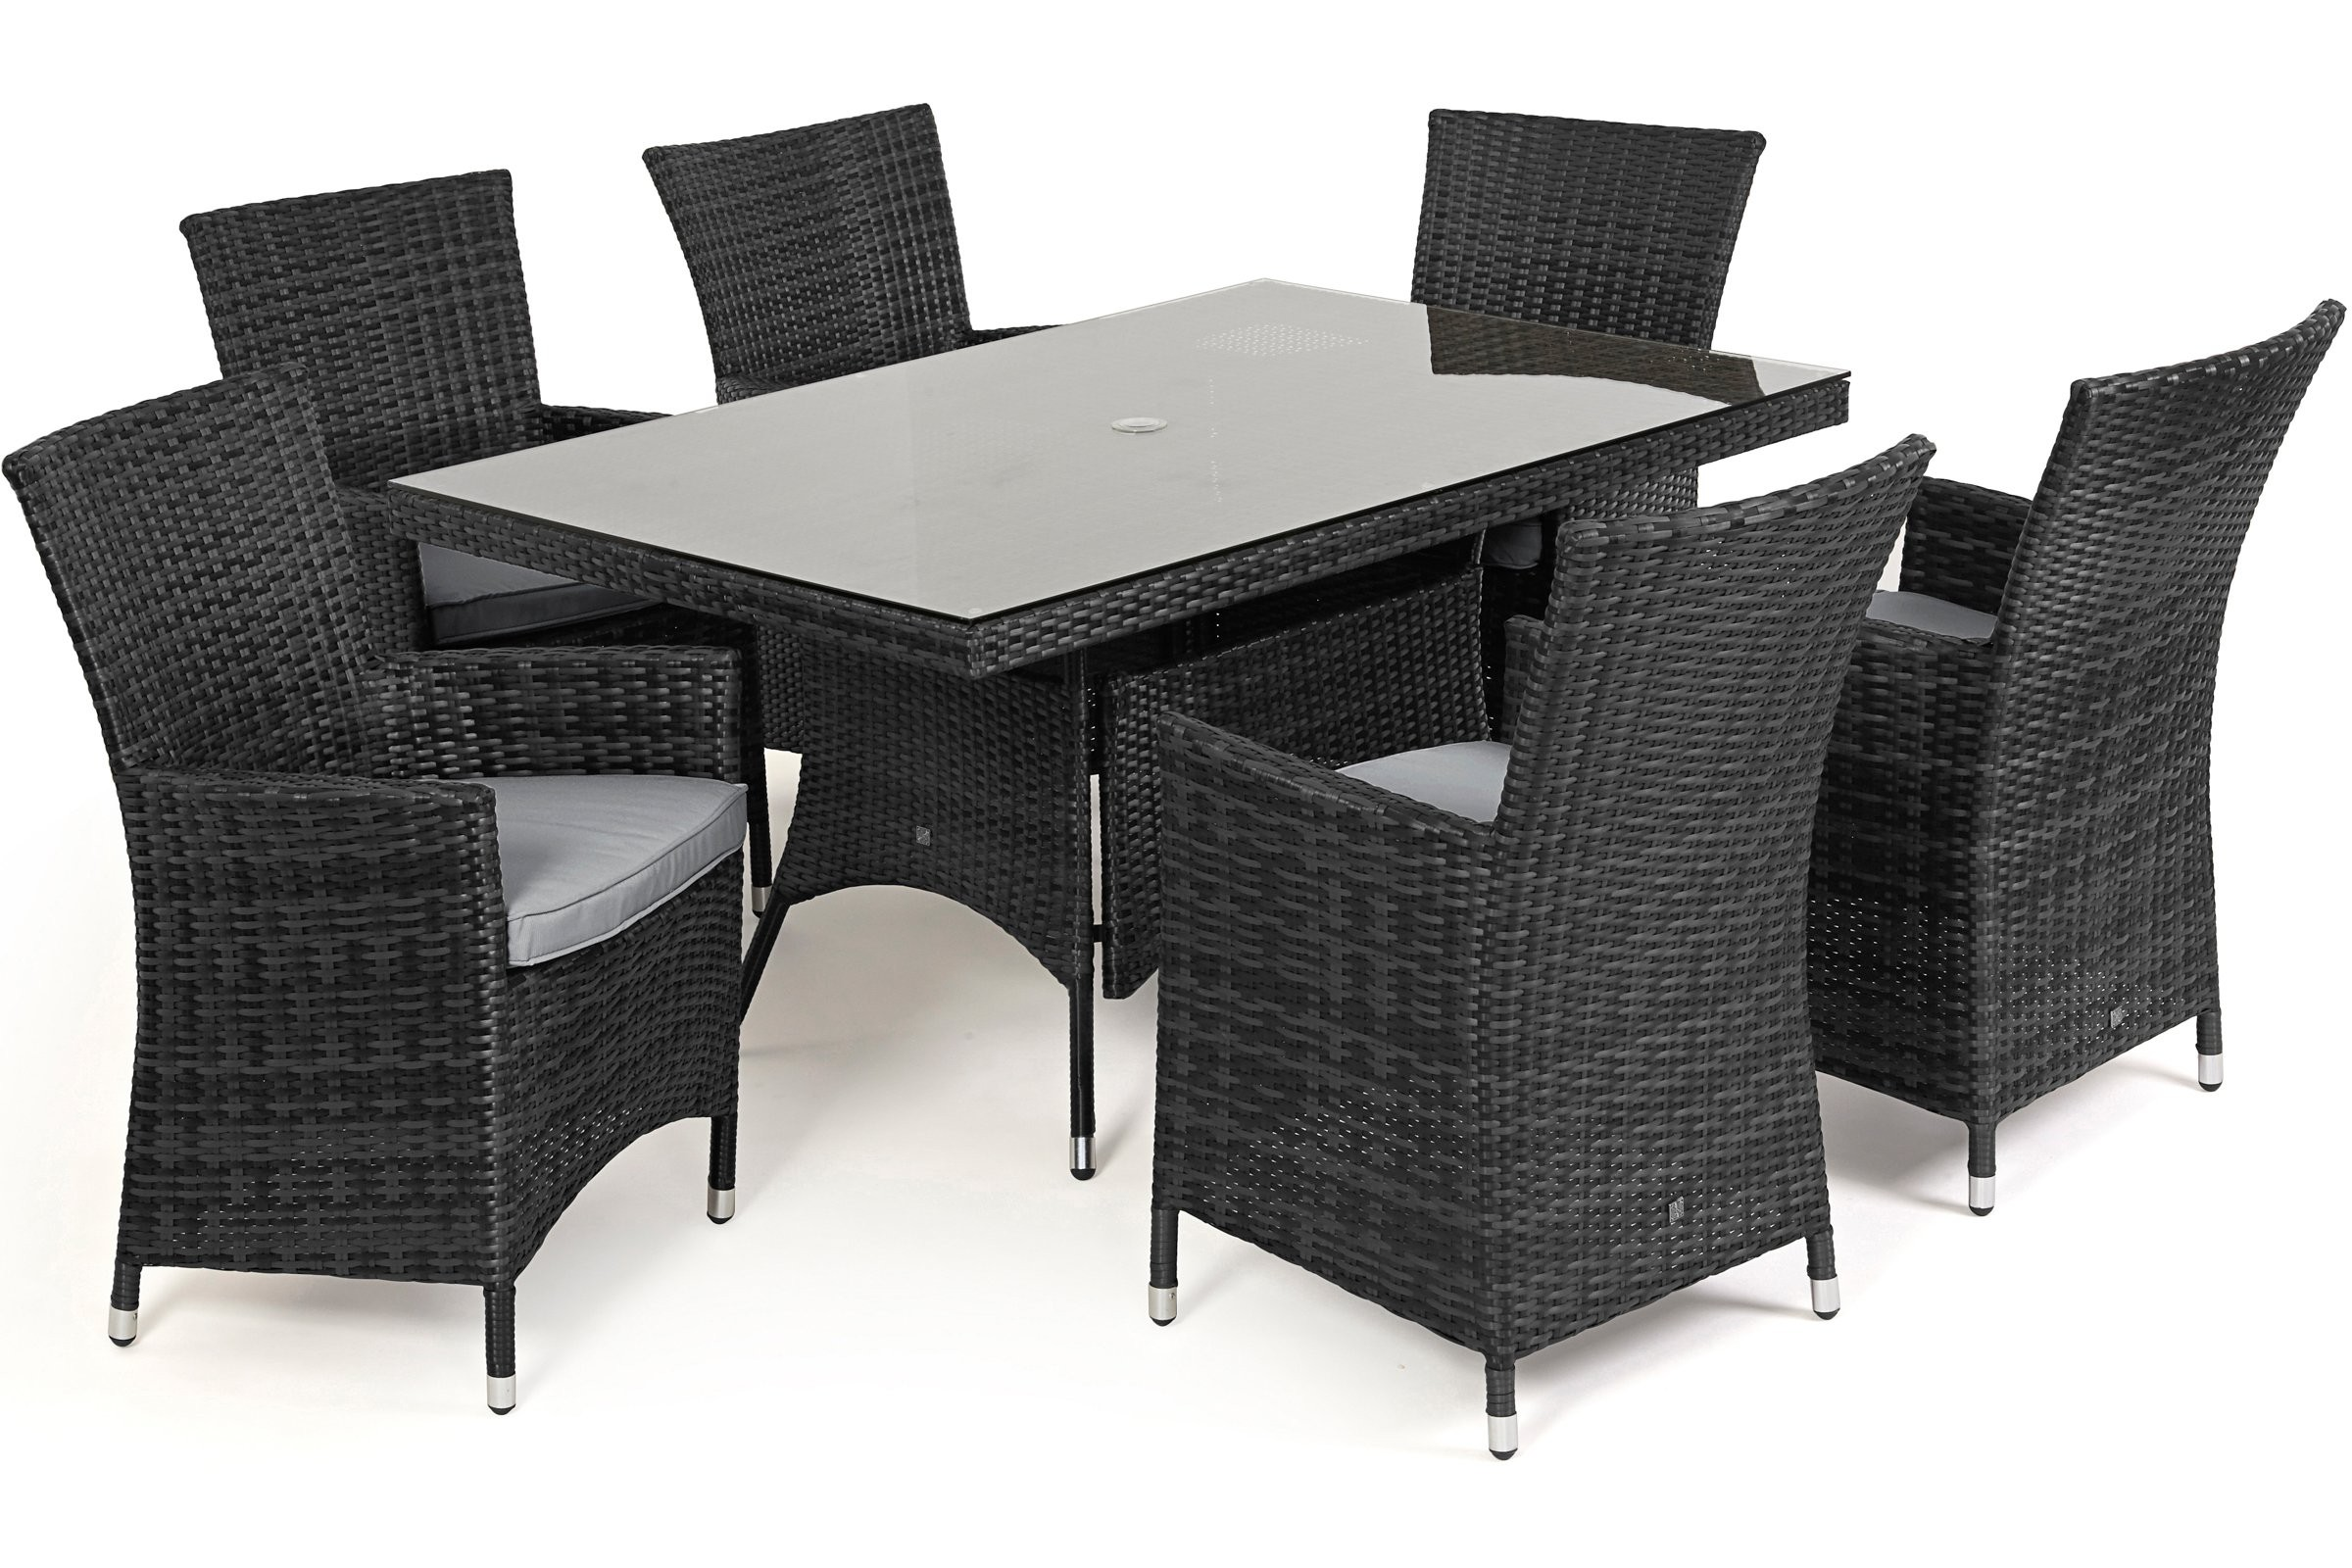 Maze Rattan La 6 Seat Rattan Rectangular Rattan Furniture Set